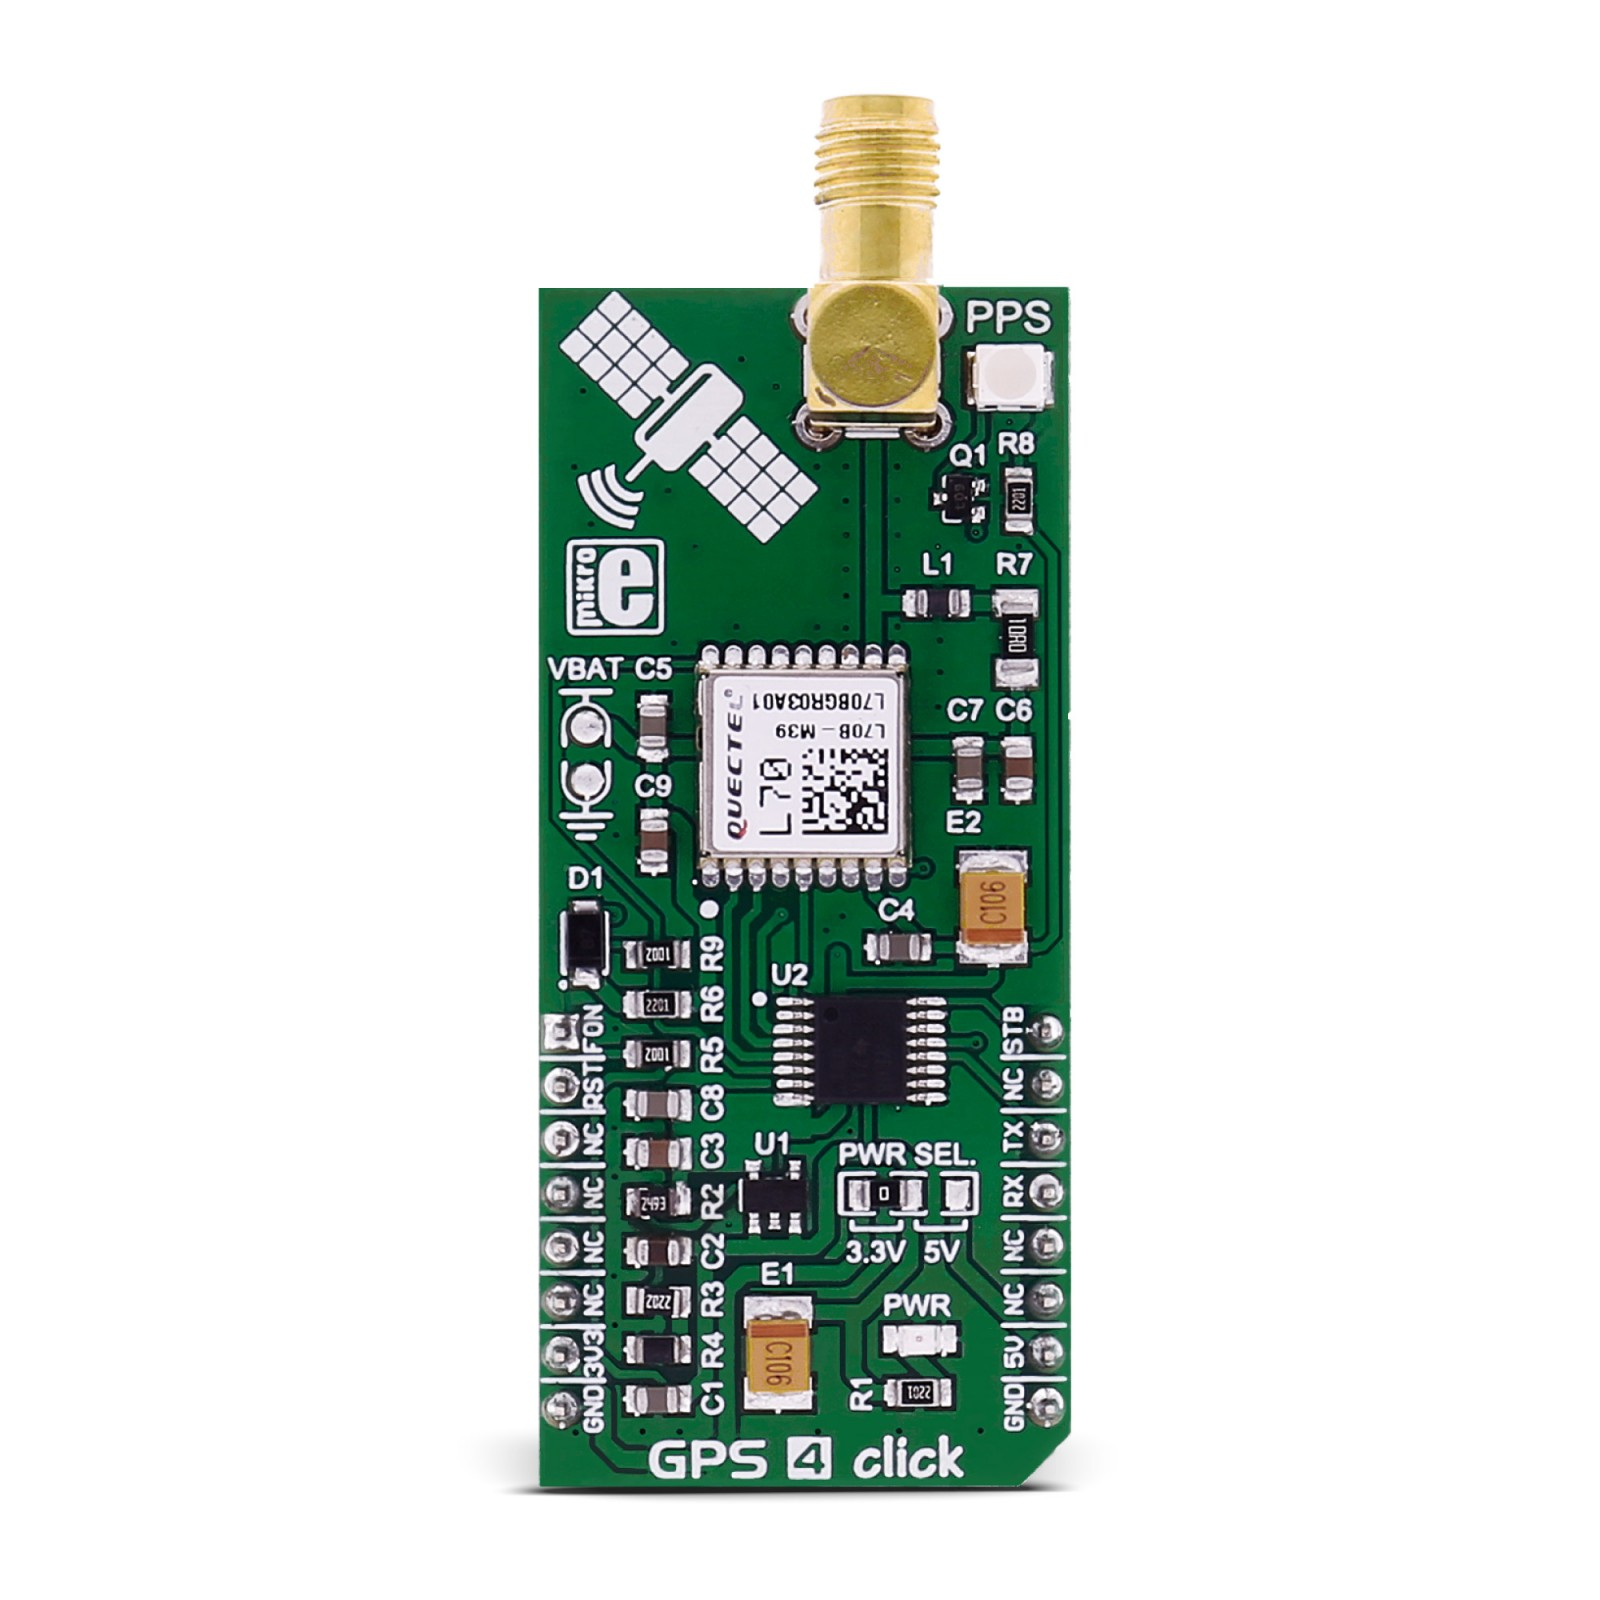 GPS 4 click - board with L70 module from Quectel | MikroElektronika